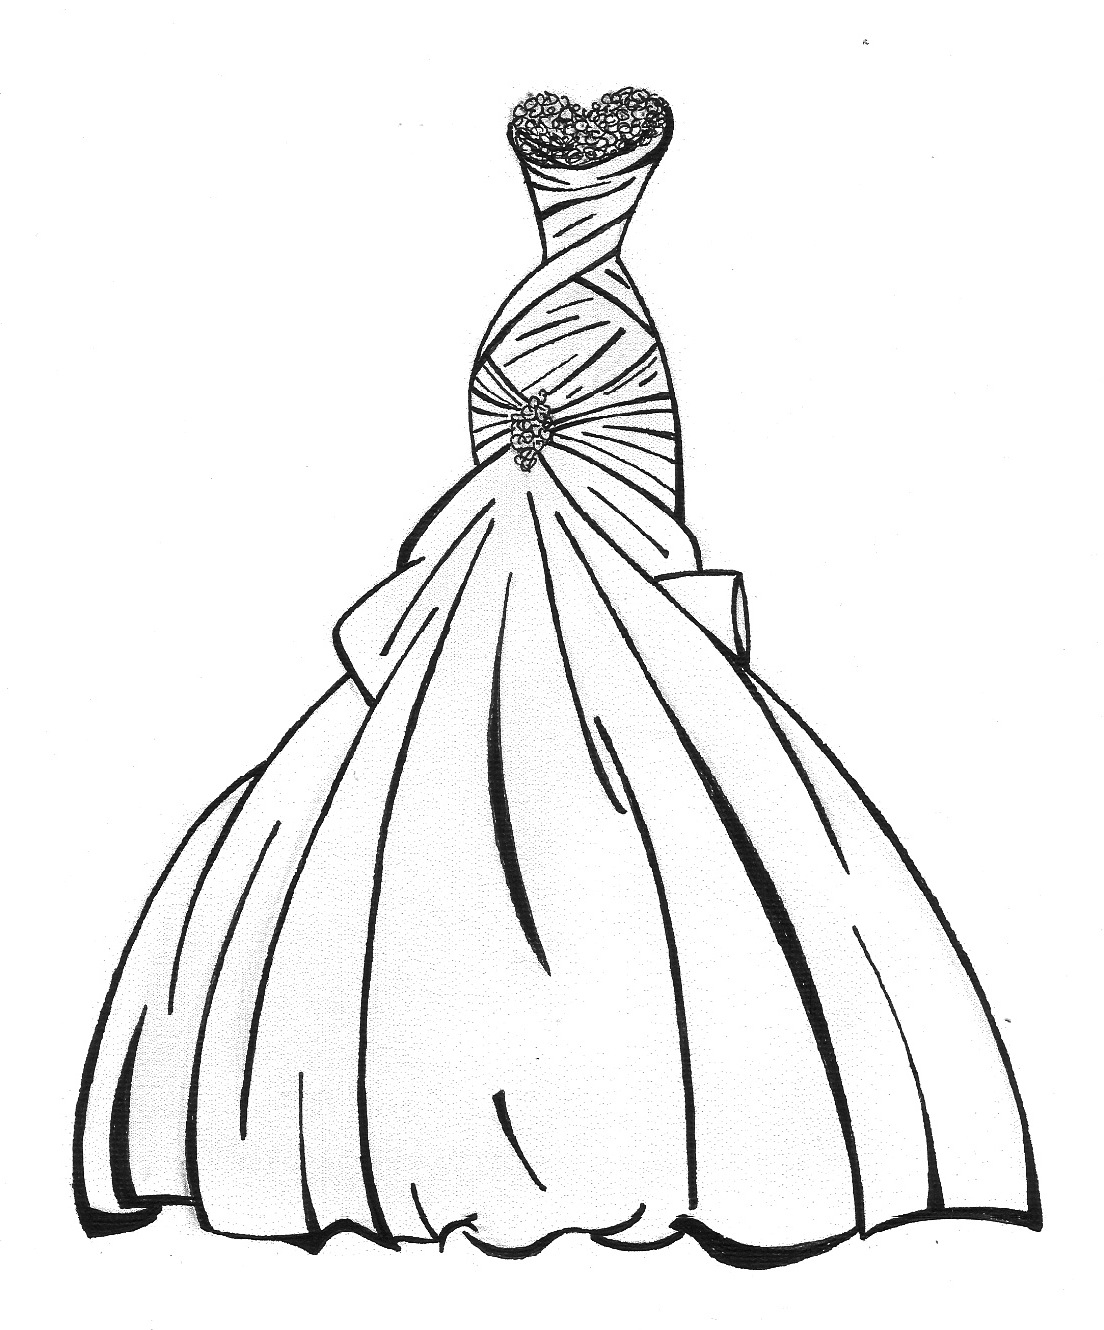 coloring pages of dresses dress coloring pages getcoloringpagescom coloring pages dresses of